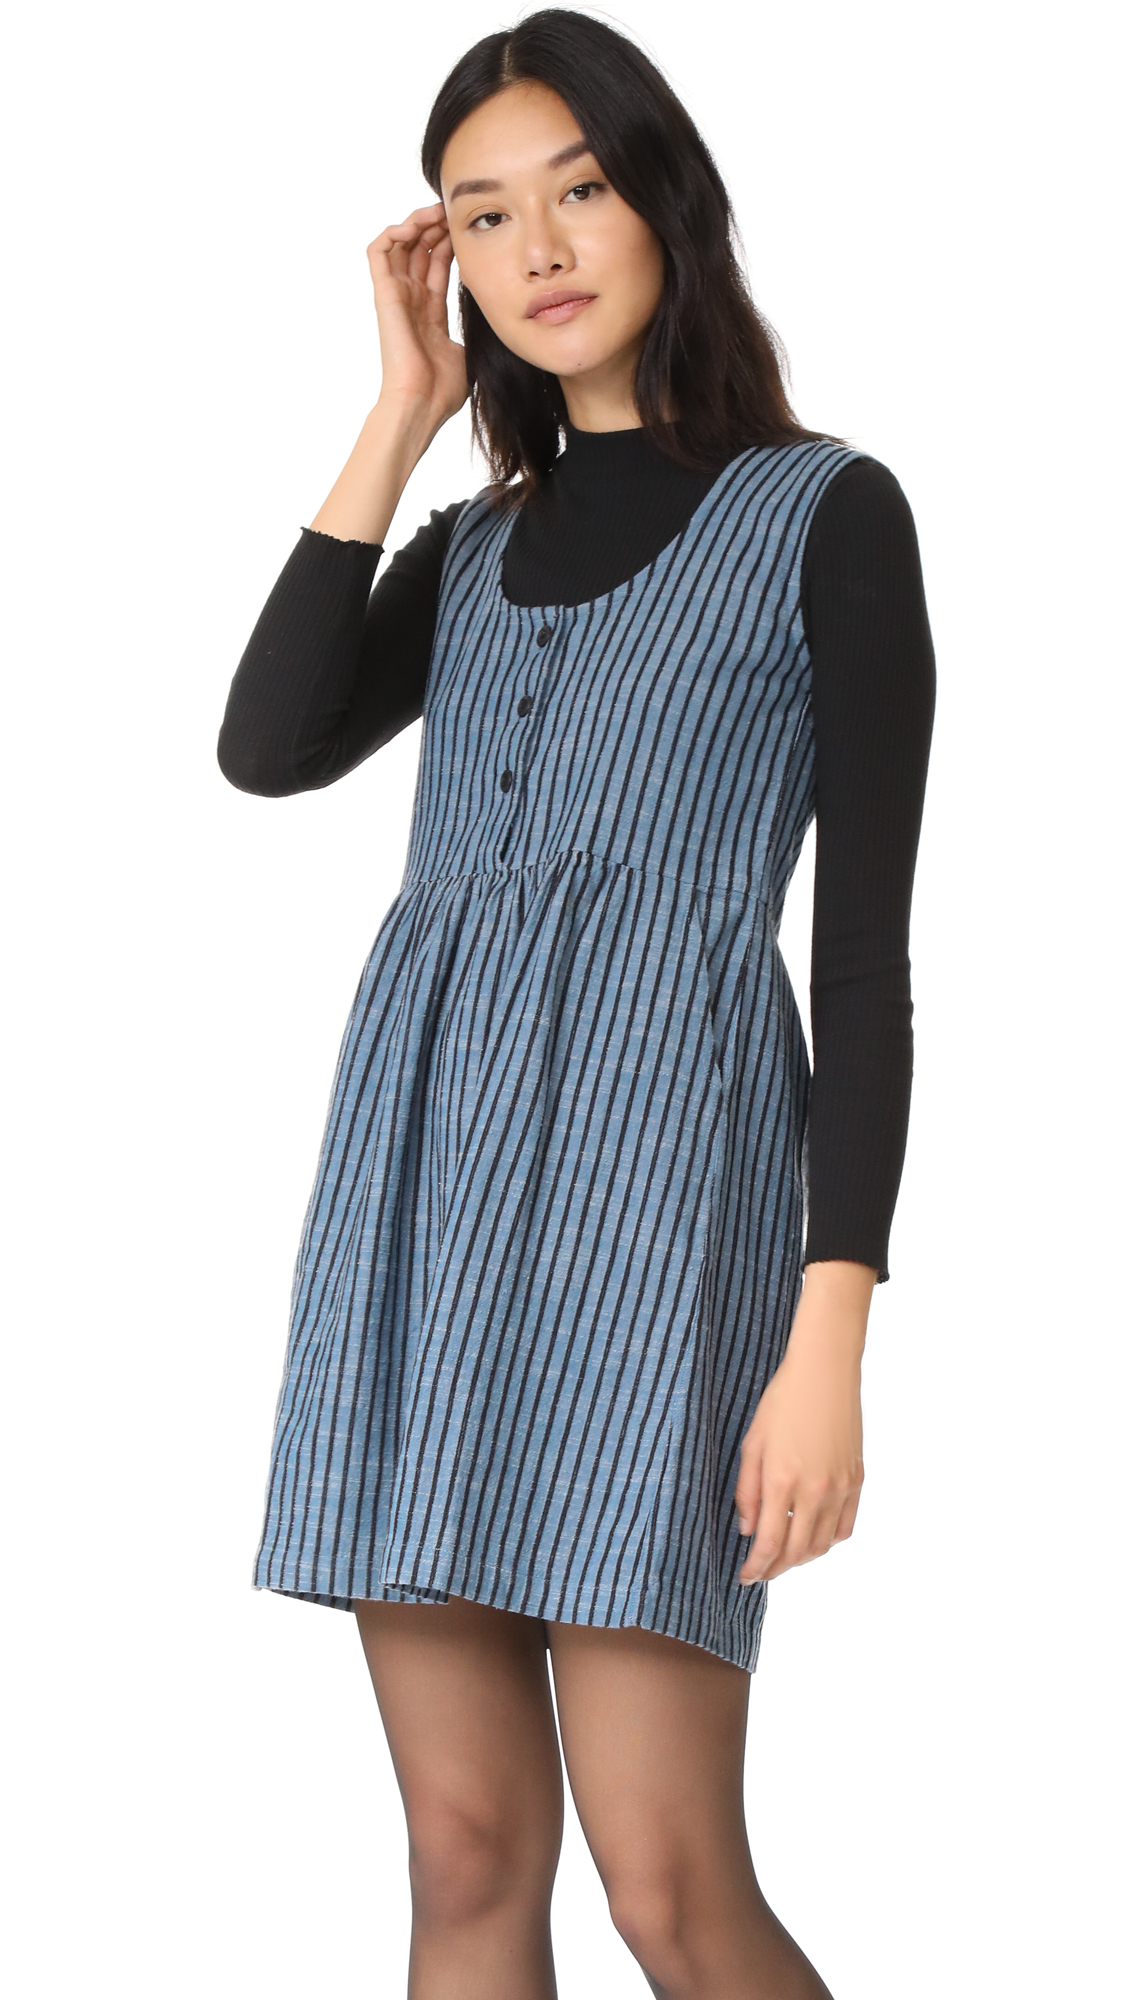 ace & jig Ruby Mini Dress - Promenade Stripe